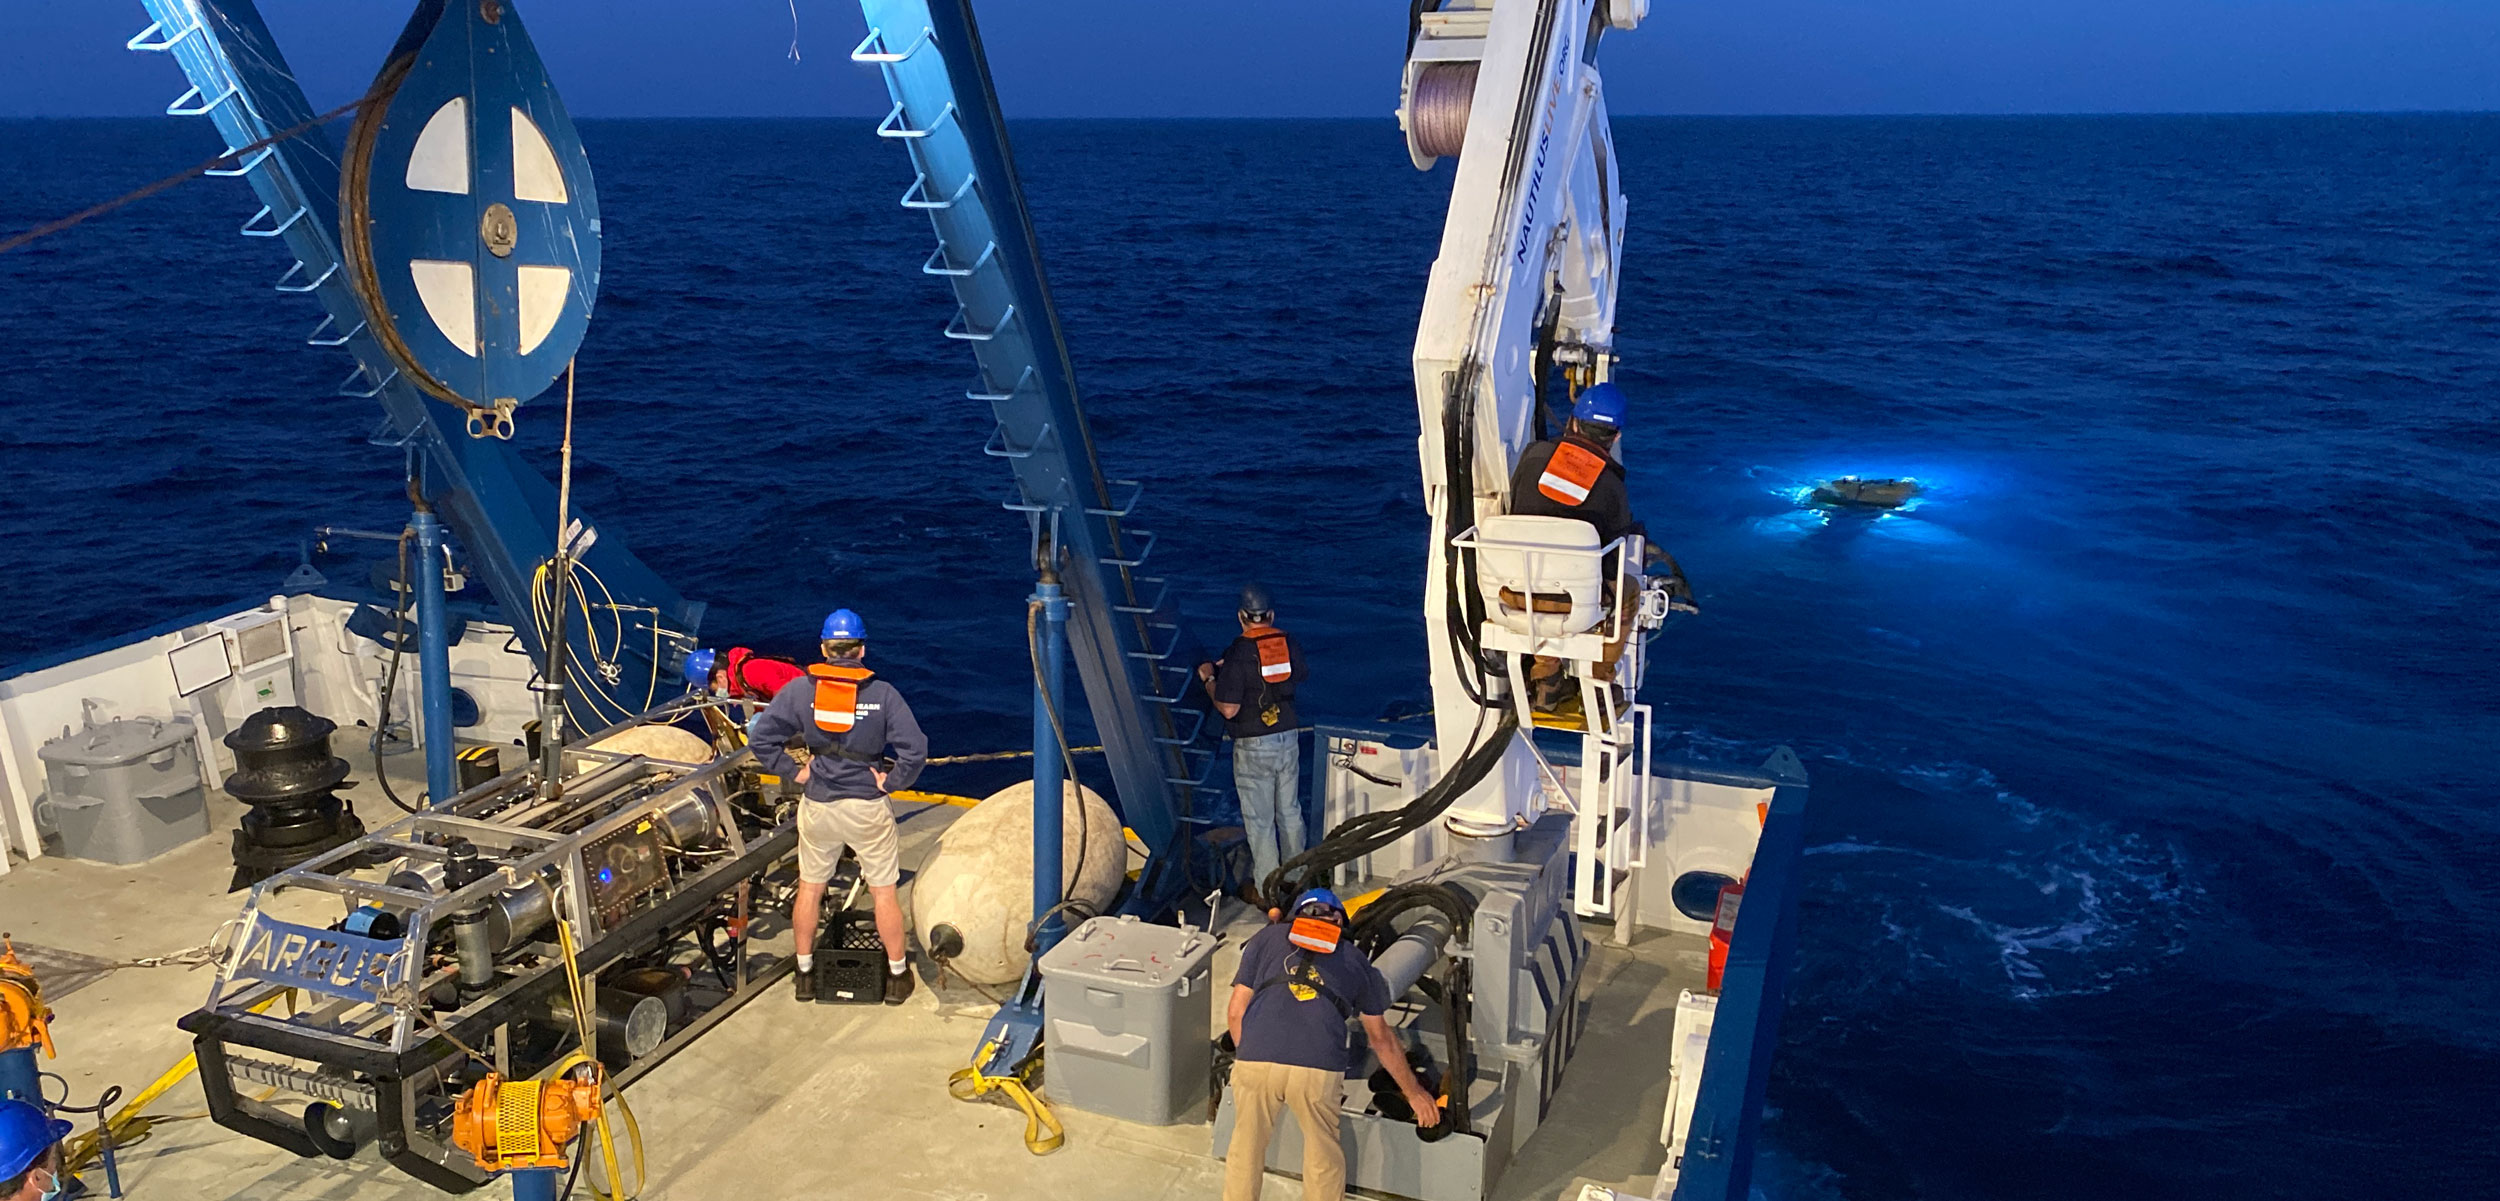 The Nautilus, a research vessel operated by the Ocean Exploration Trust, and the ROV Hercules